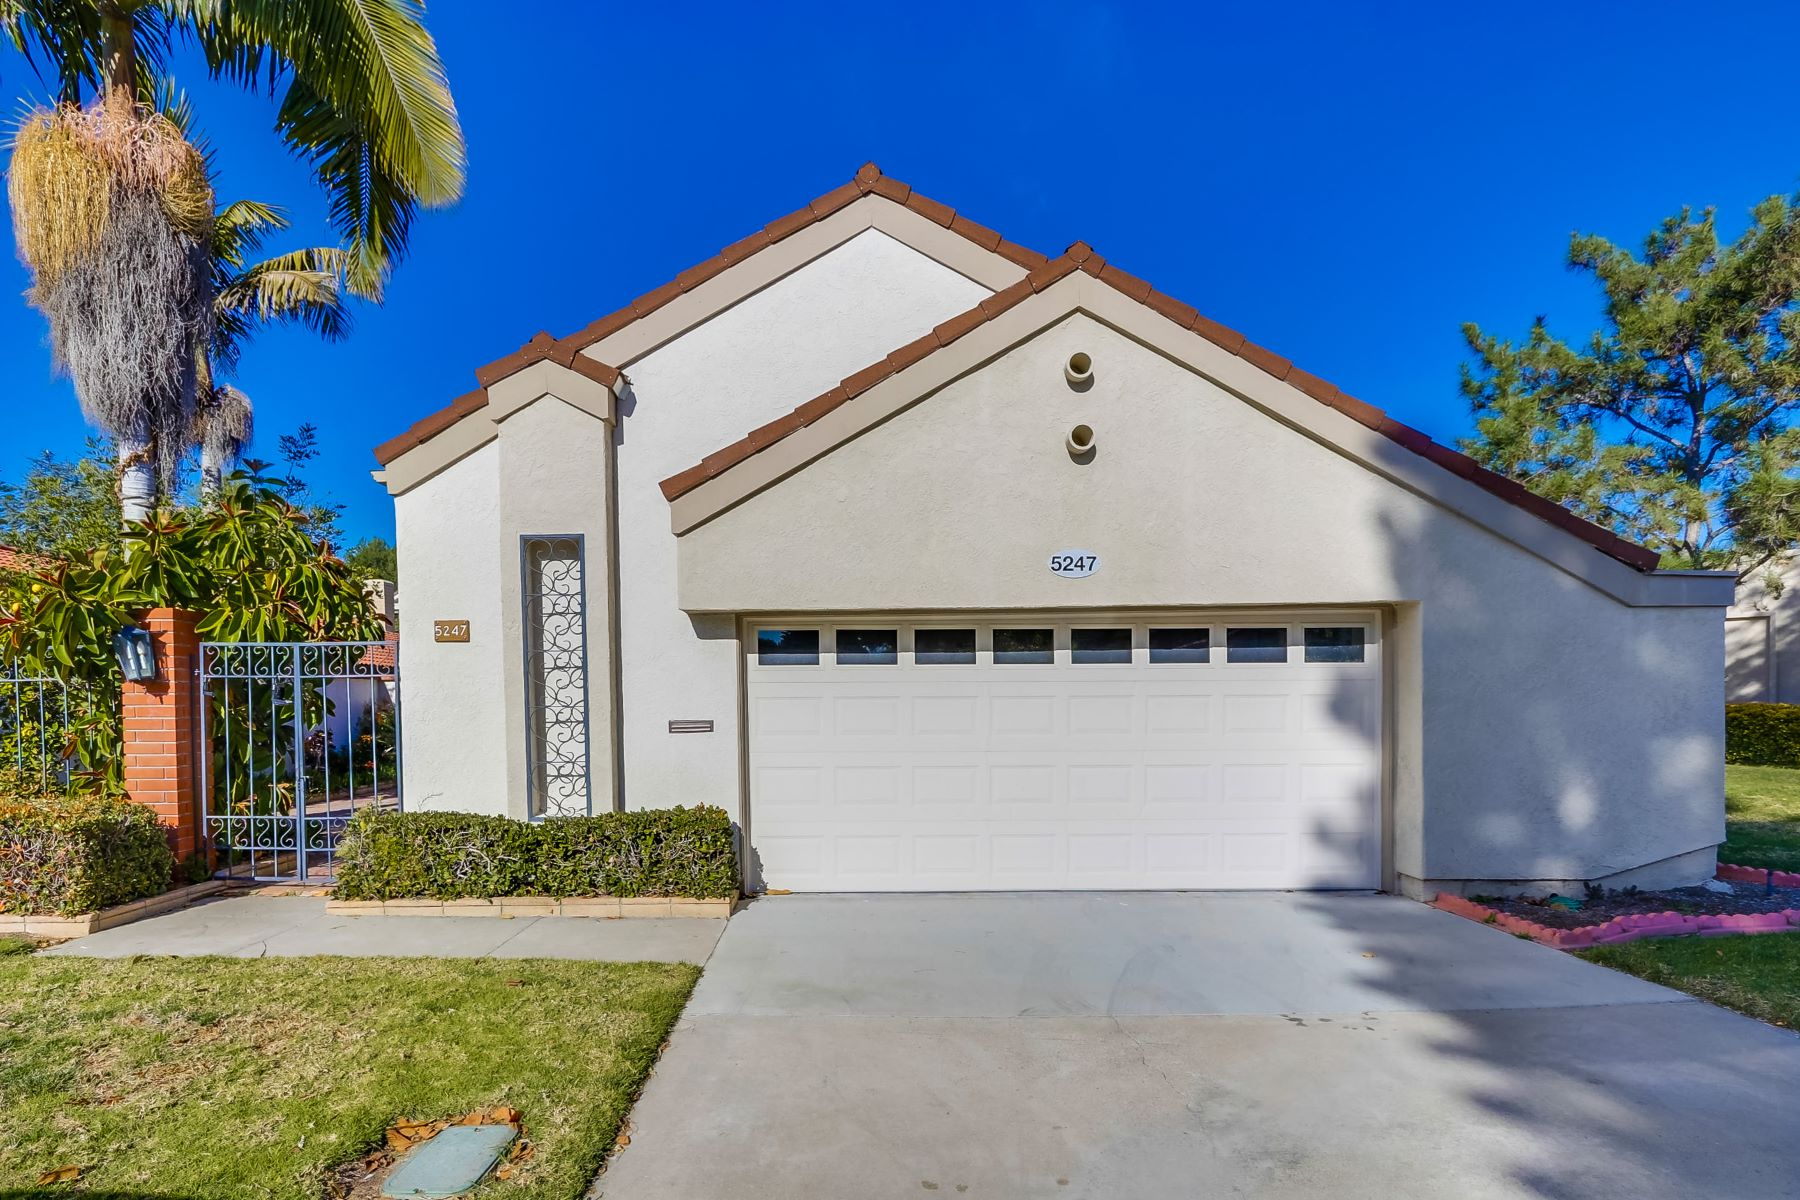 Other Residential Homes for Active at Updated Home in Laguna Woods Village 5247 Duenas Laguna Woods, California 92637 United States